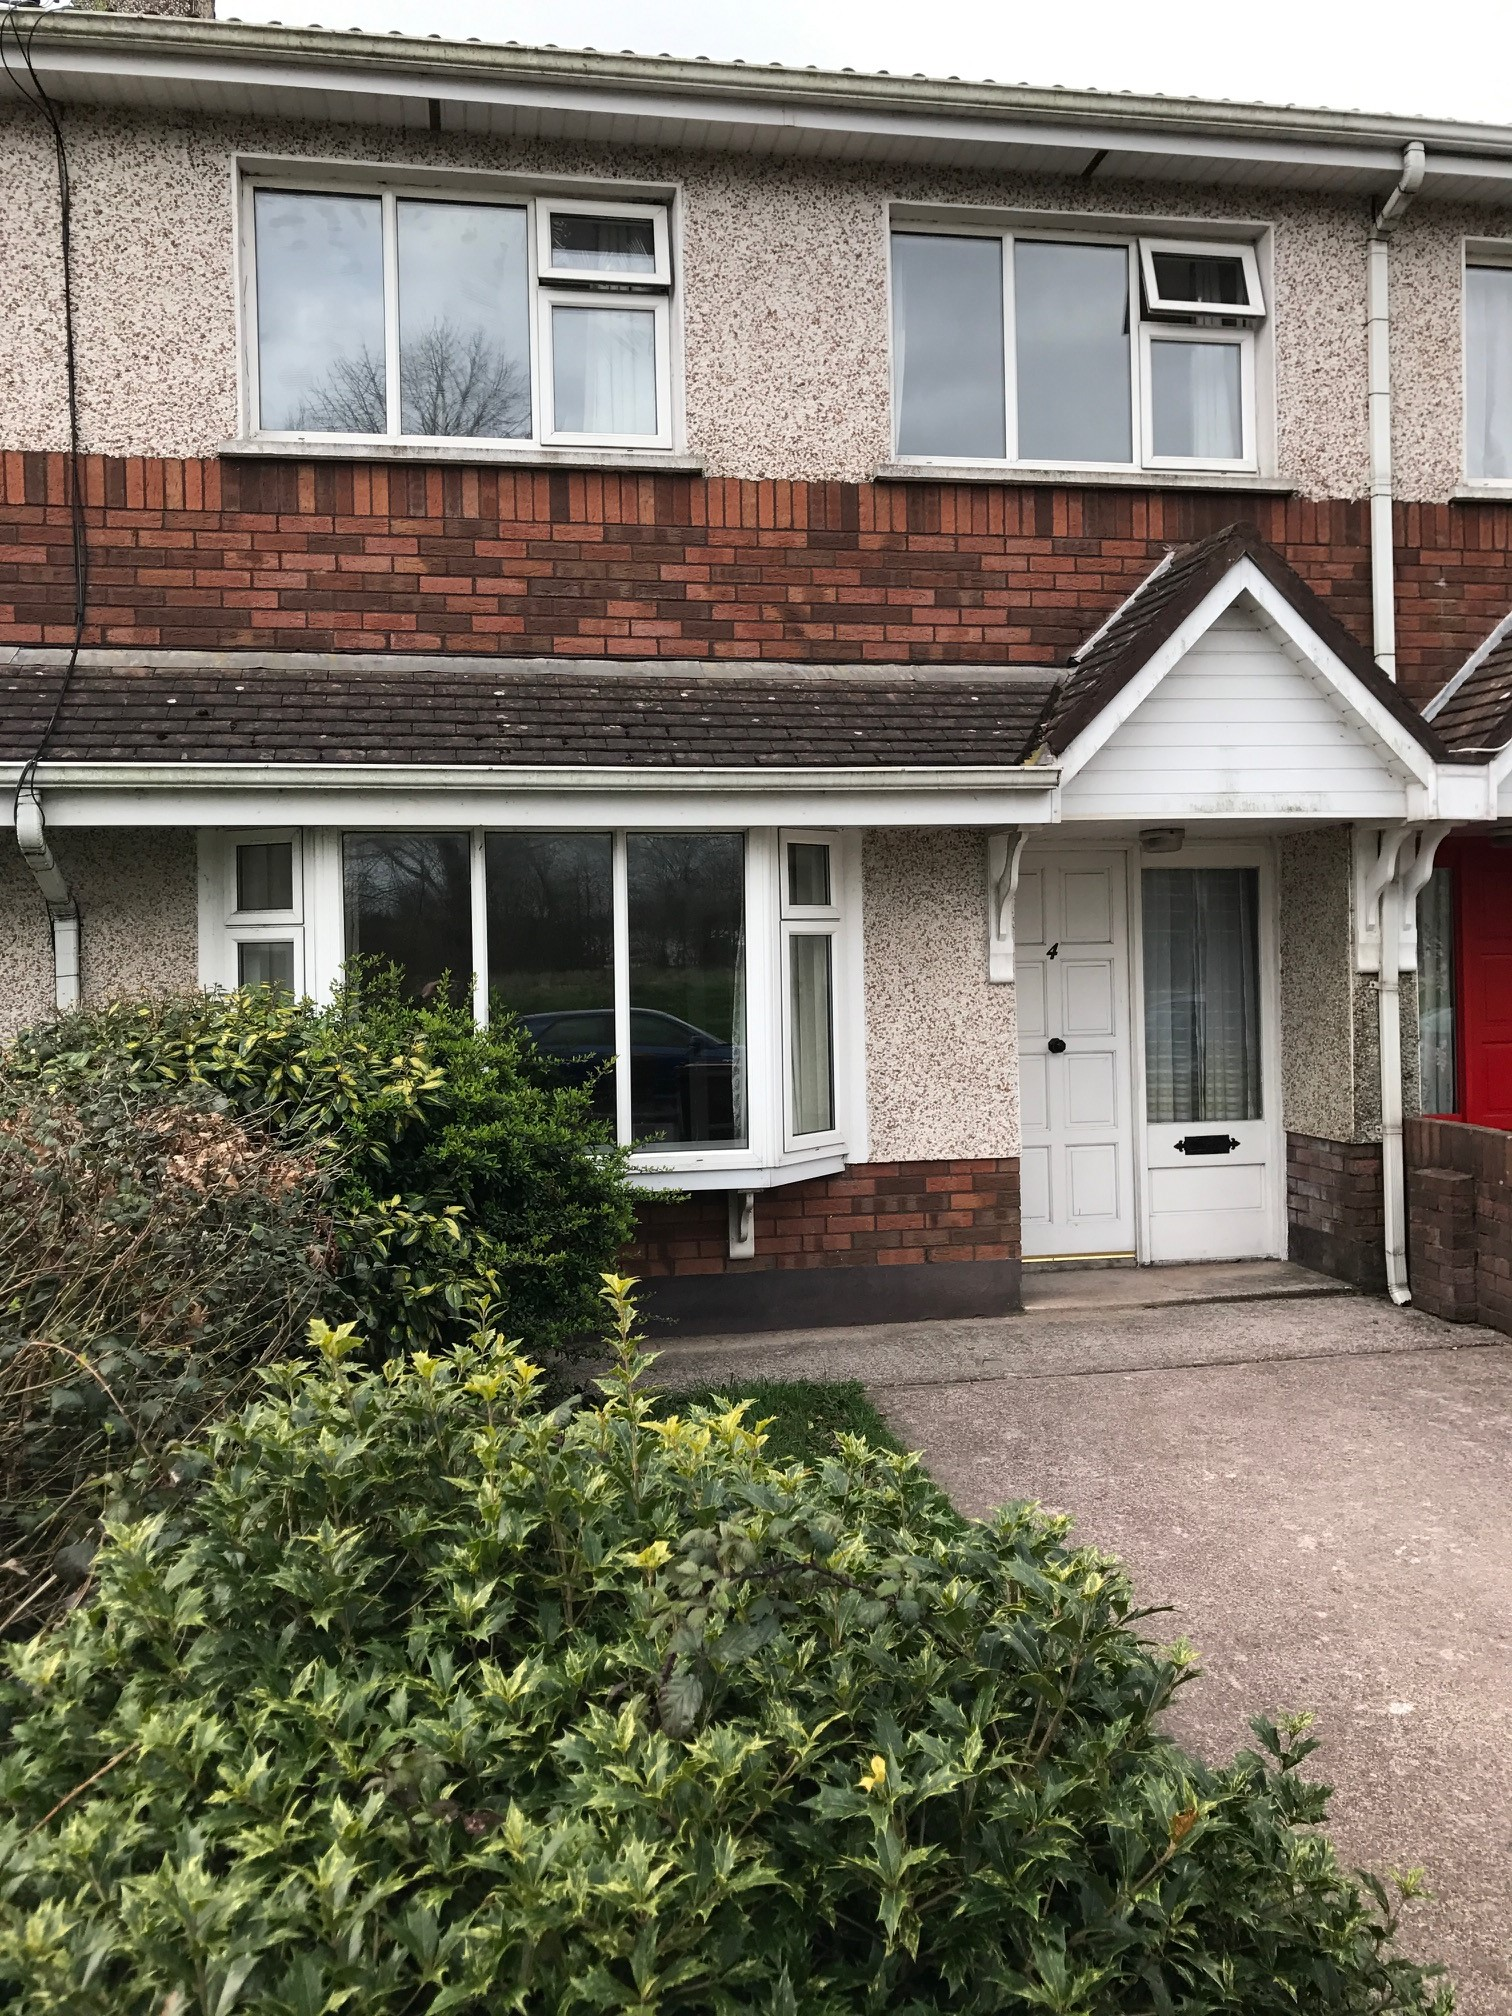 4 Woodhaven, Bishopstown – SOLD